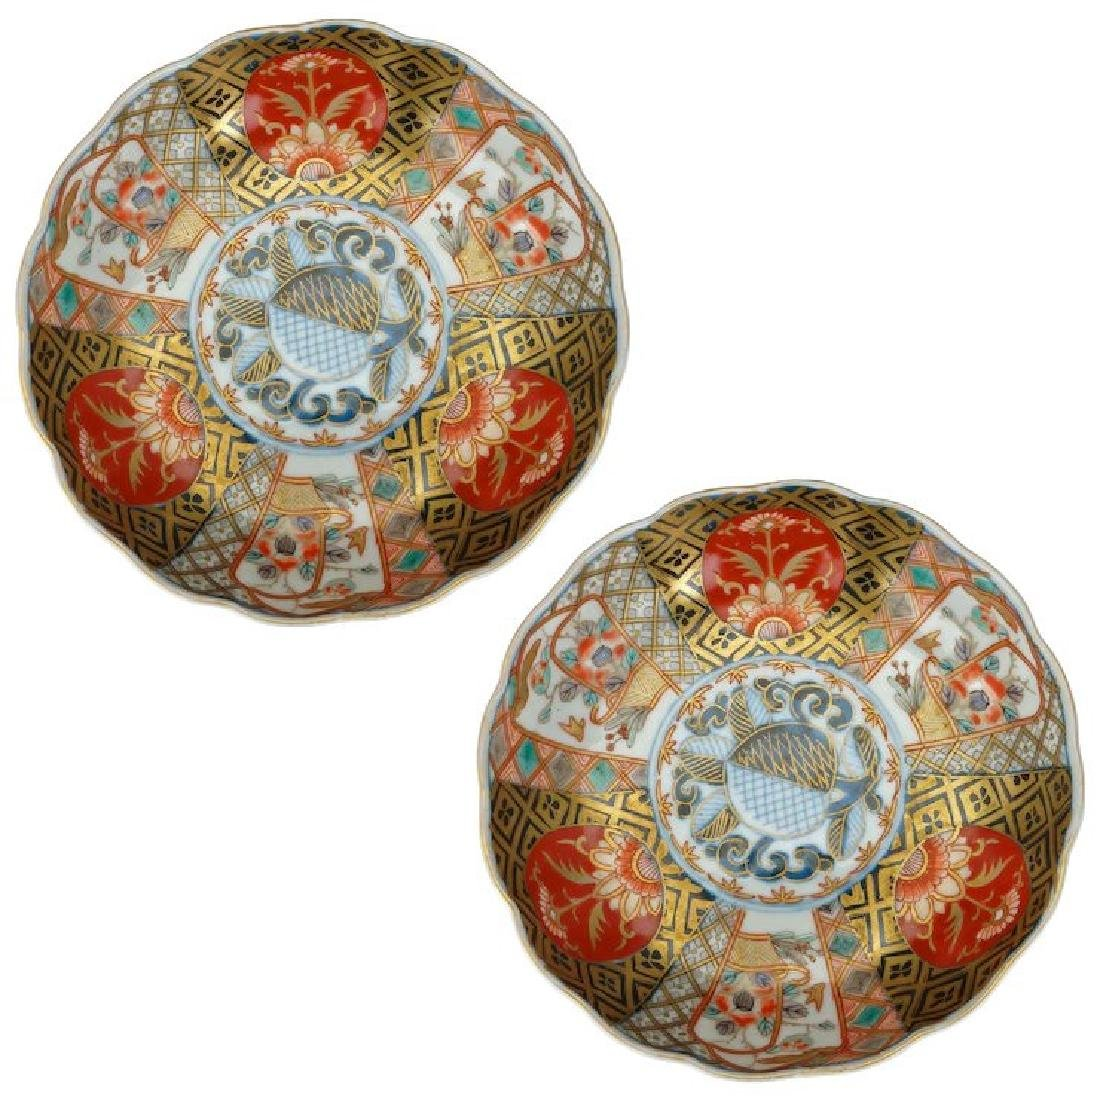 Matching pair of round Japanese porcelain colored Imari